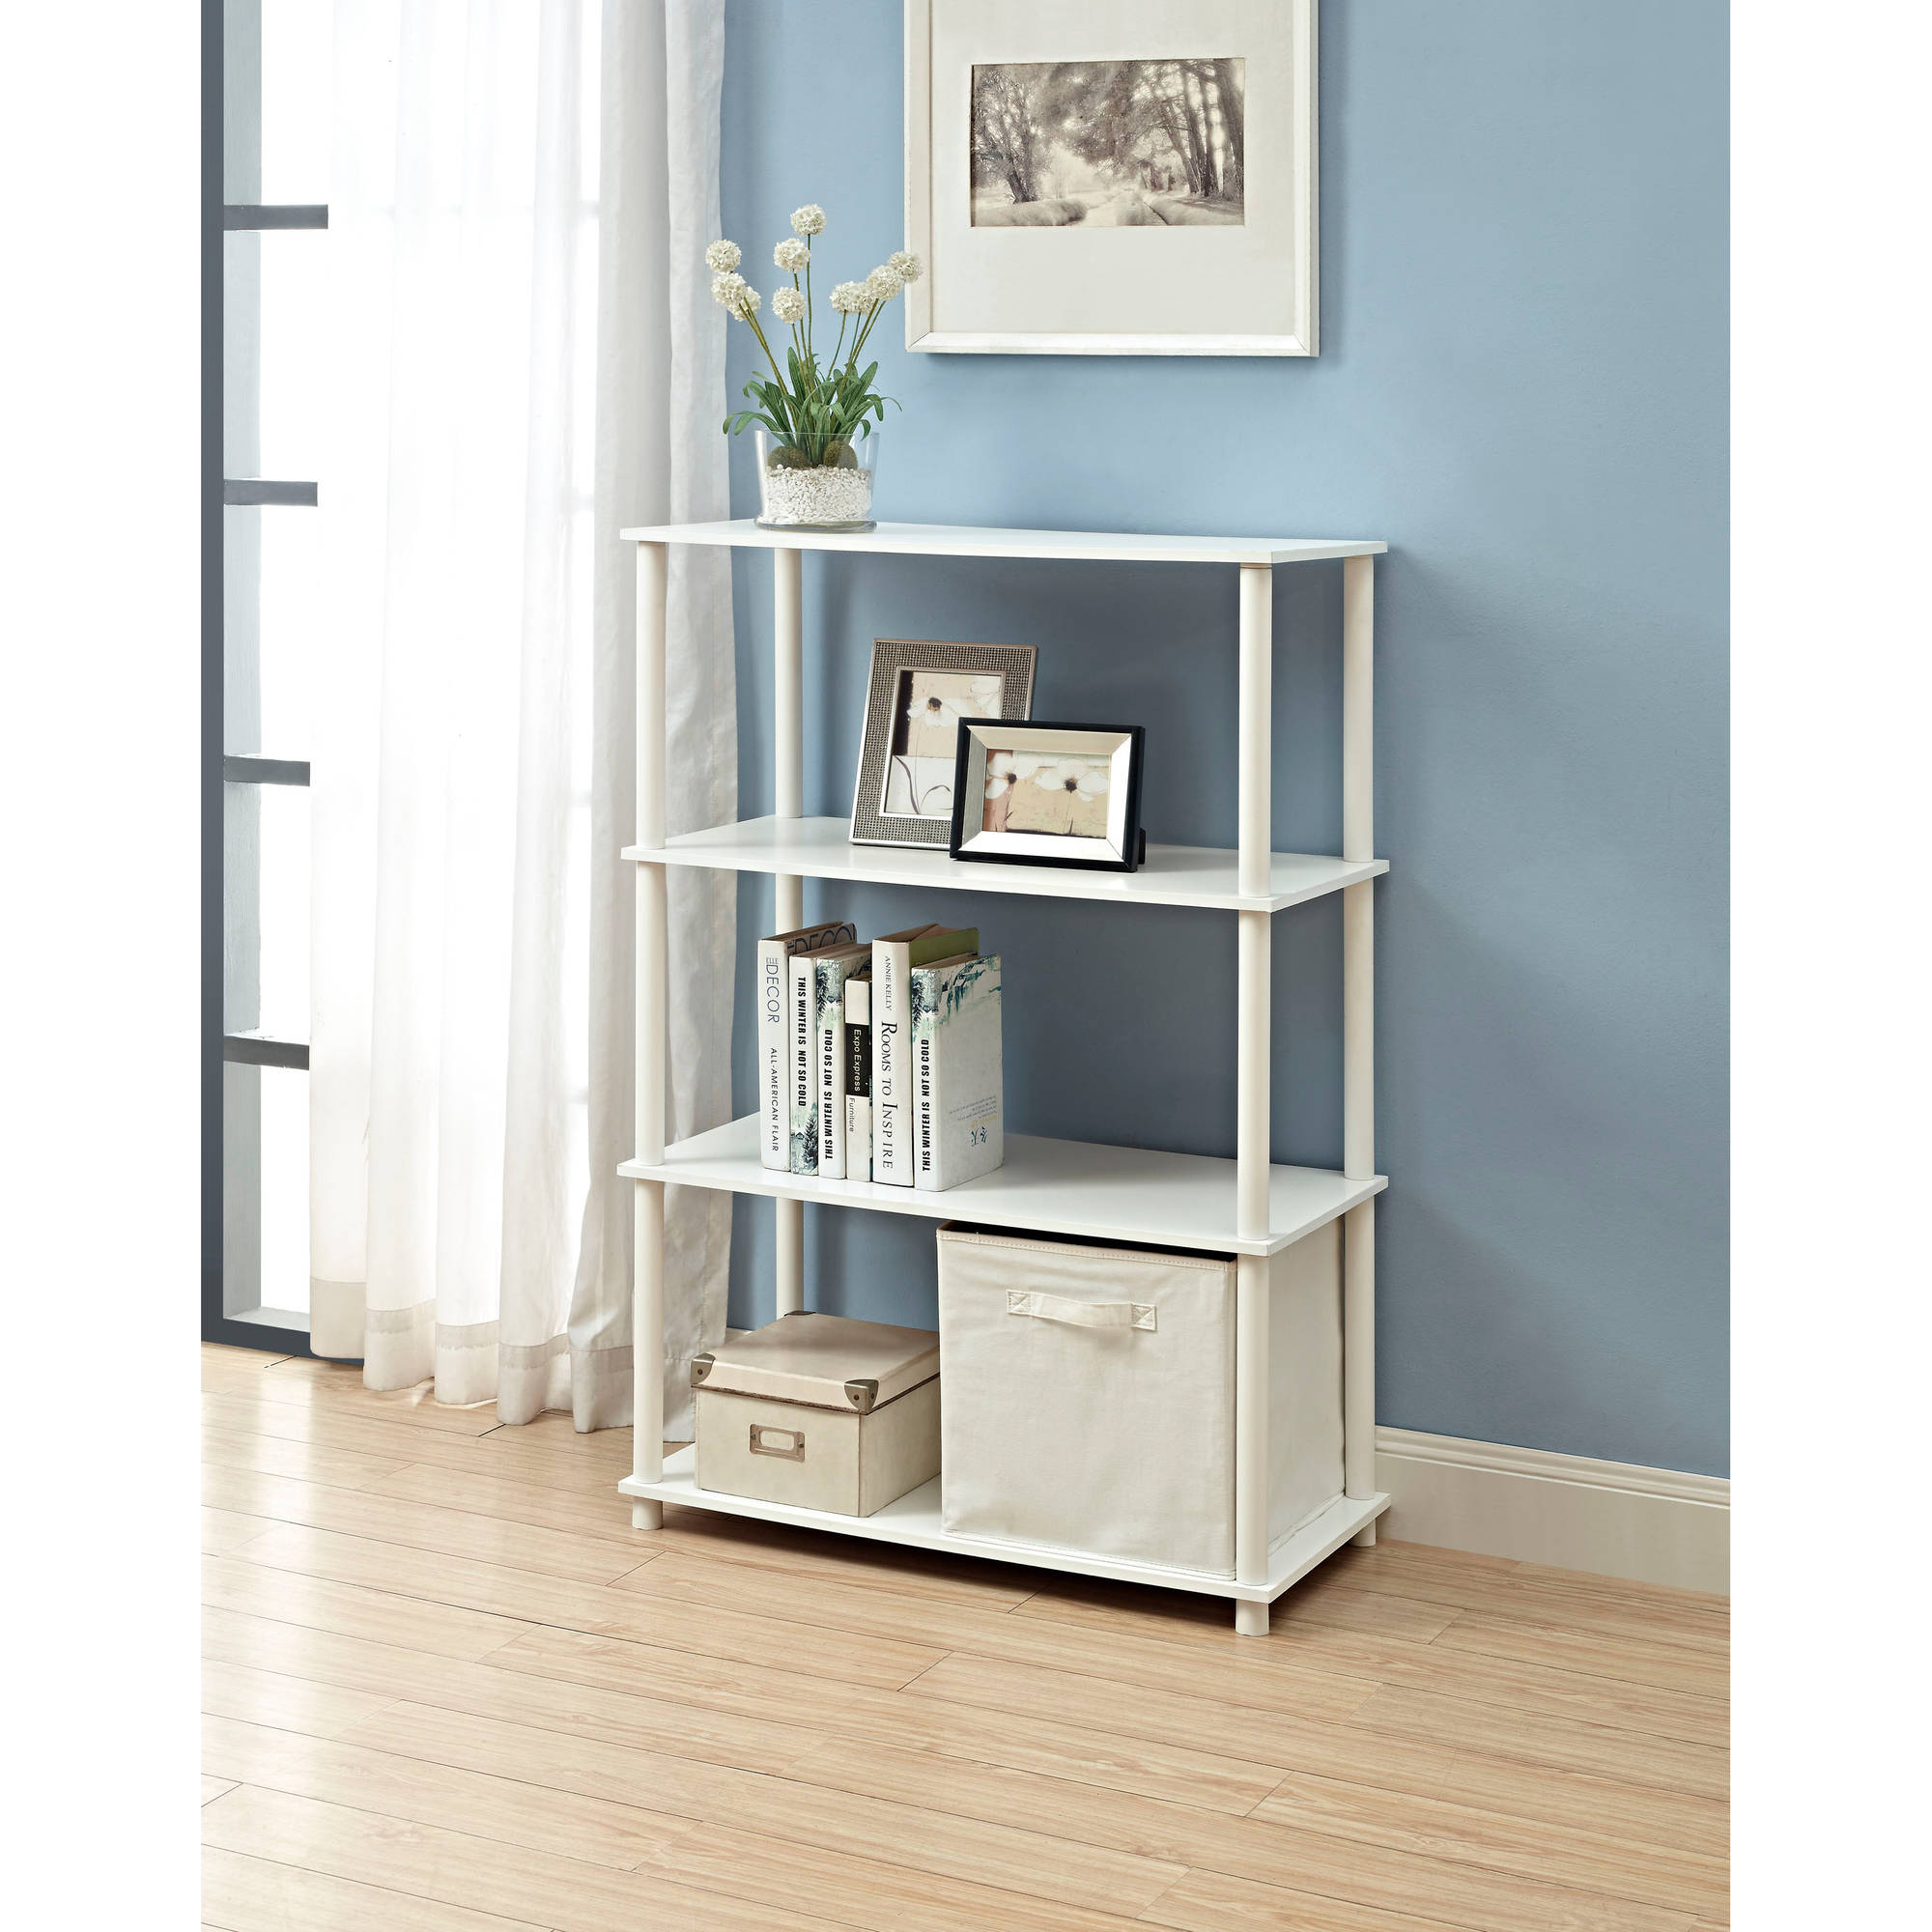 Walmart Shelving | Cubby Shelves Walmart | Clothes Shelves Walmart